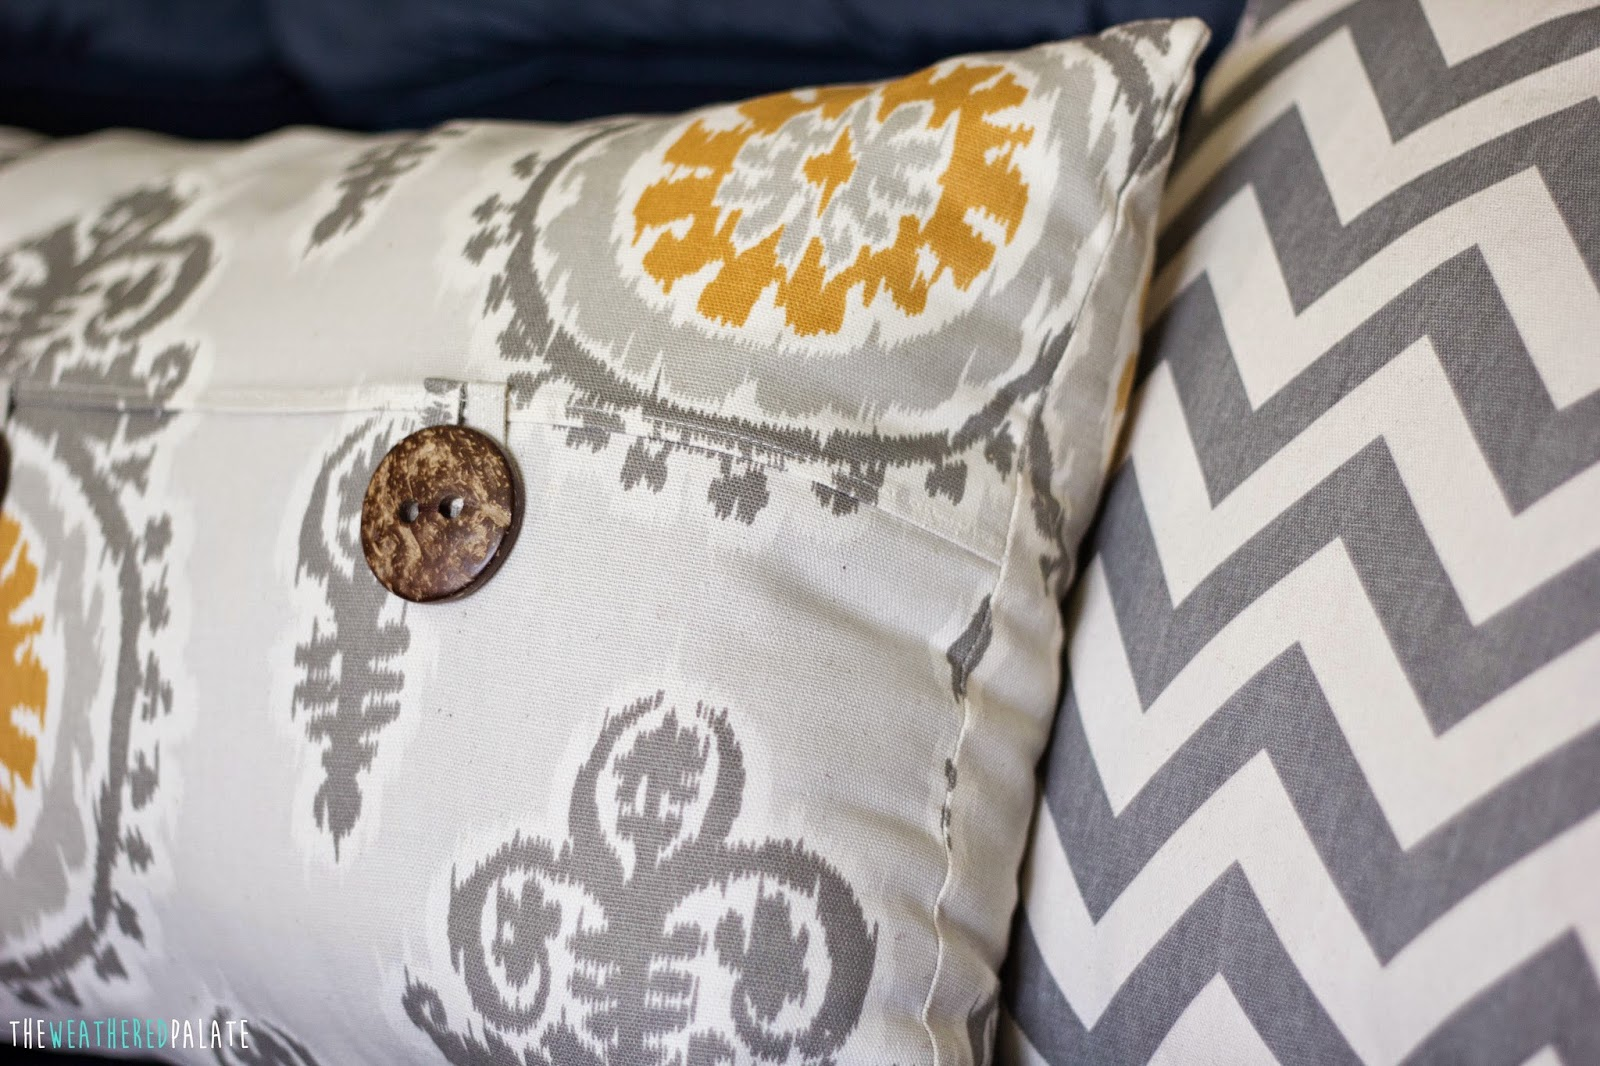 http://www.theweatheredpalate.com/2014/09/living-room-pillows.html